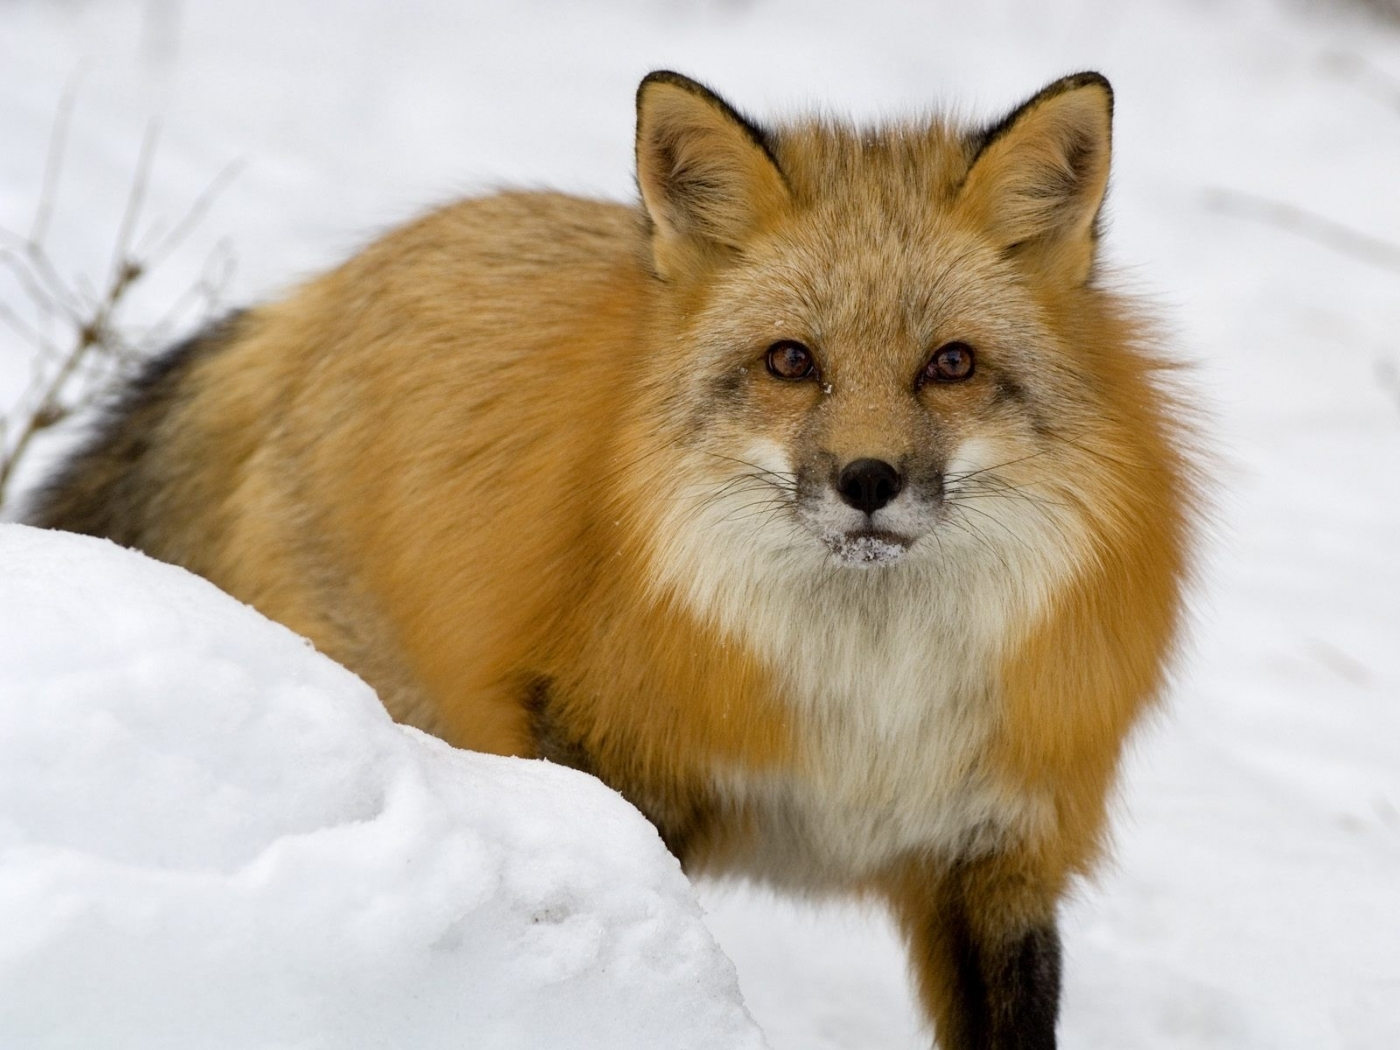 46717 download wallpaper Animals, Fox screensavers and pictures for free